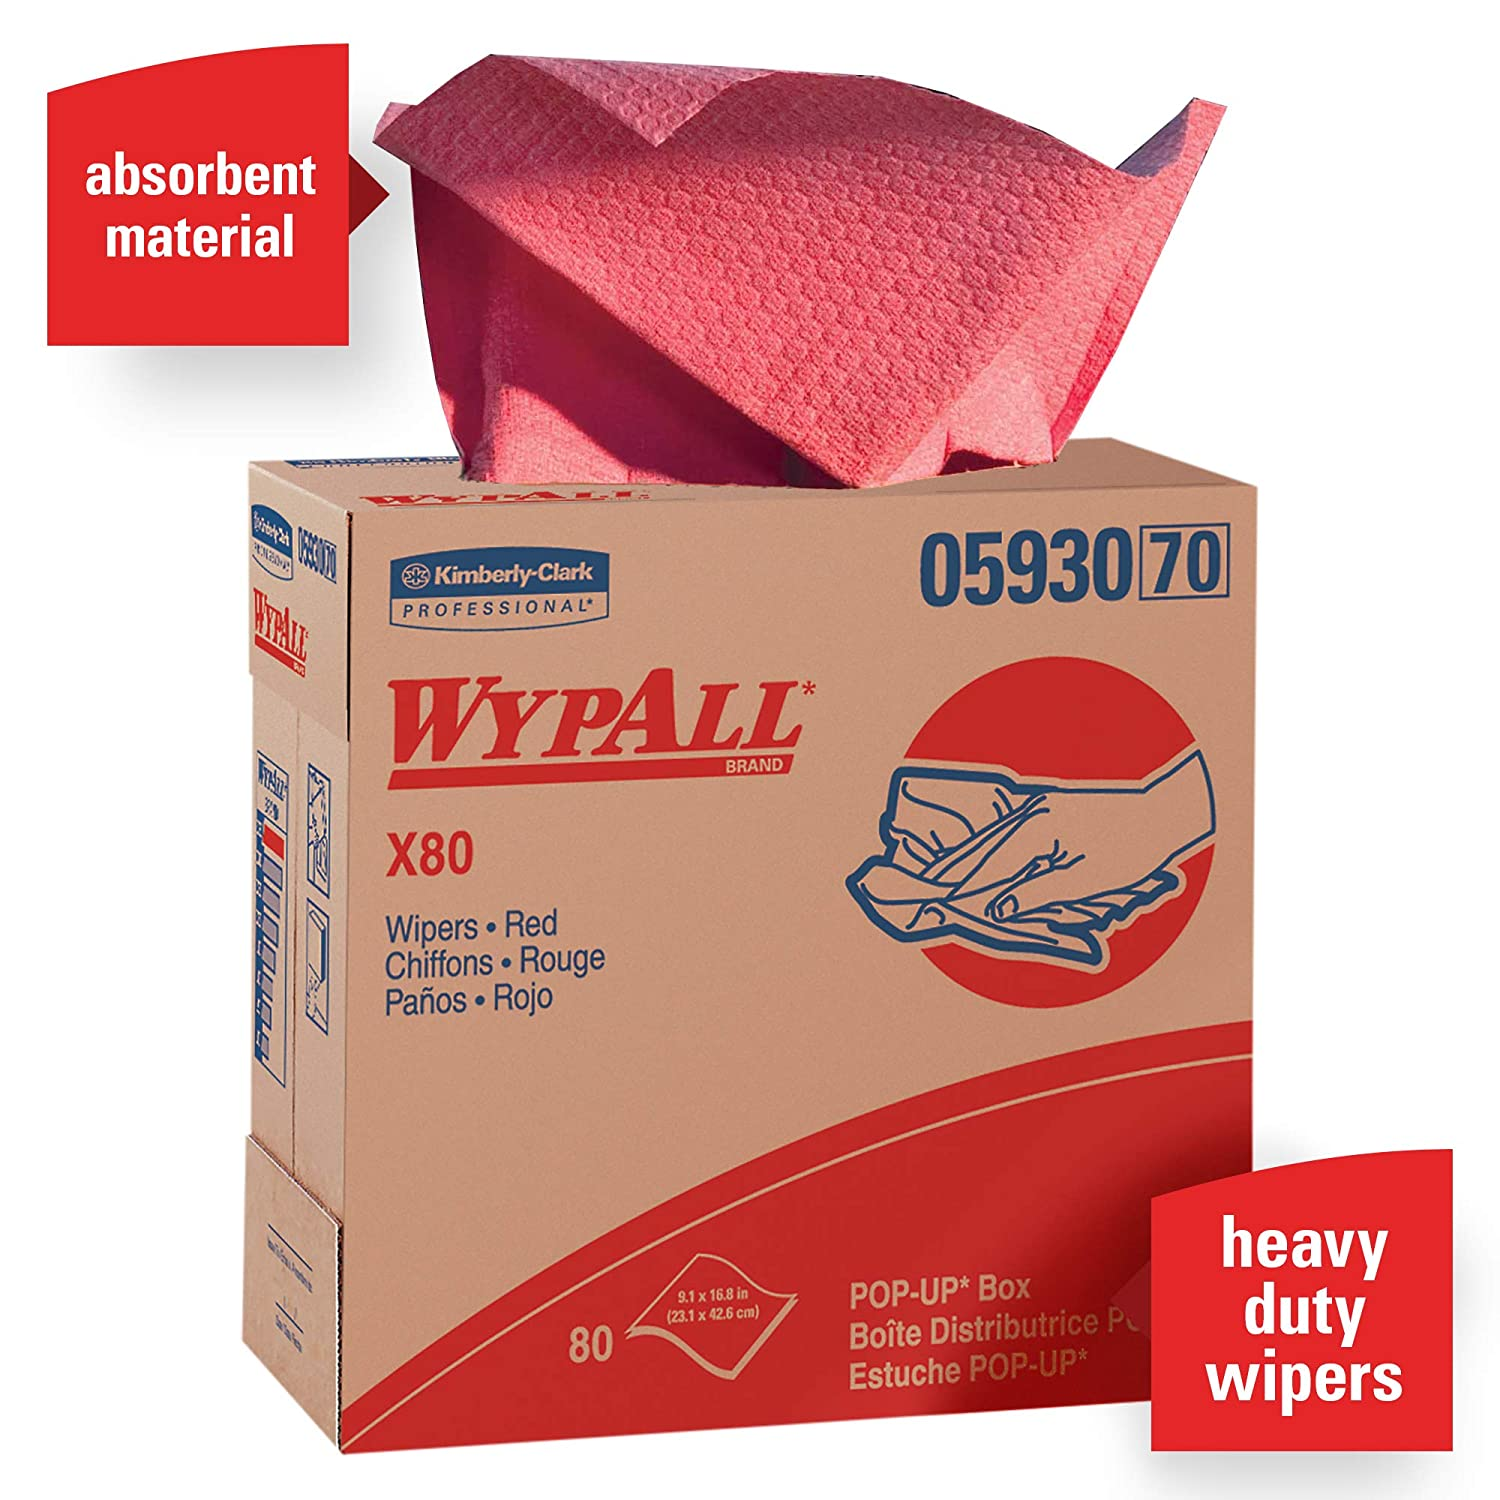 Wypall X80 Reusable Wipes (05930), Extended Use Cloths, Red, 80 Sheets / Pop-Up Box; 5 Boxes / Case